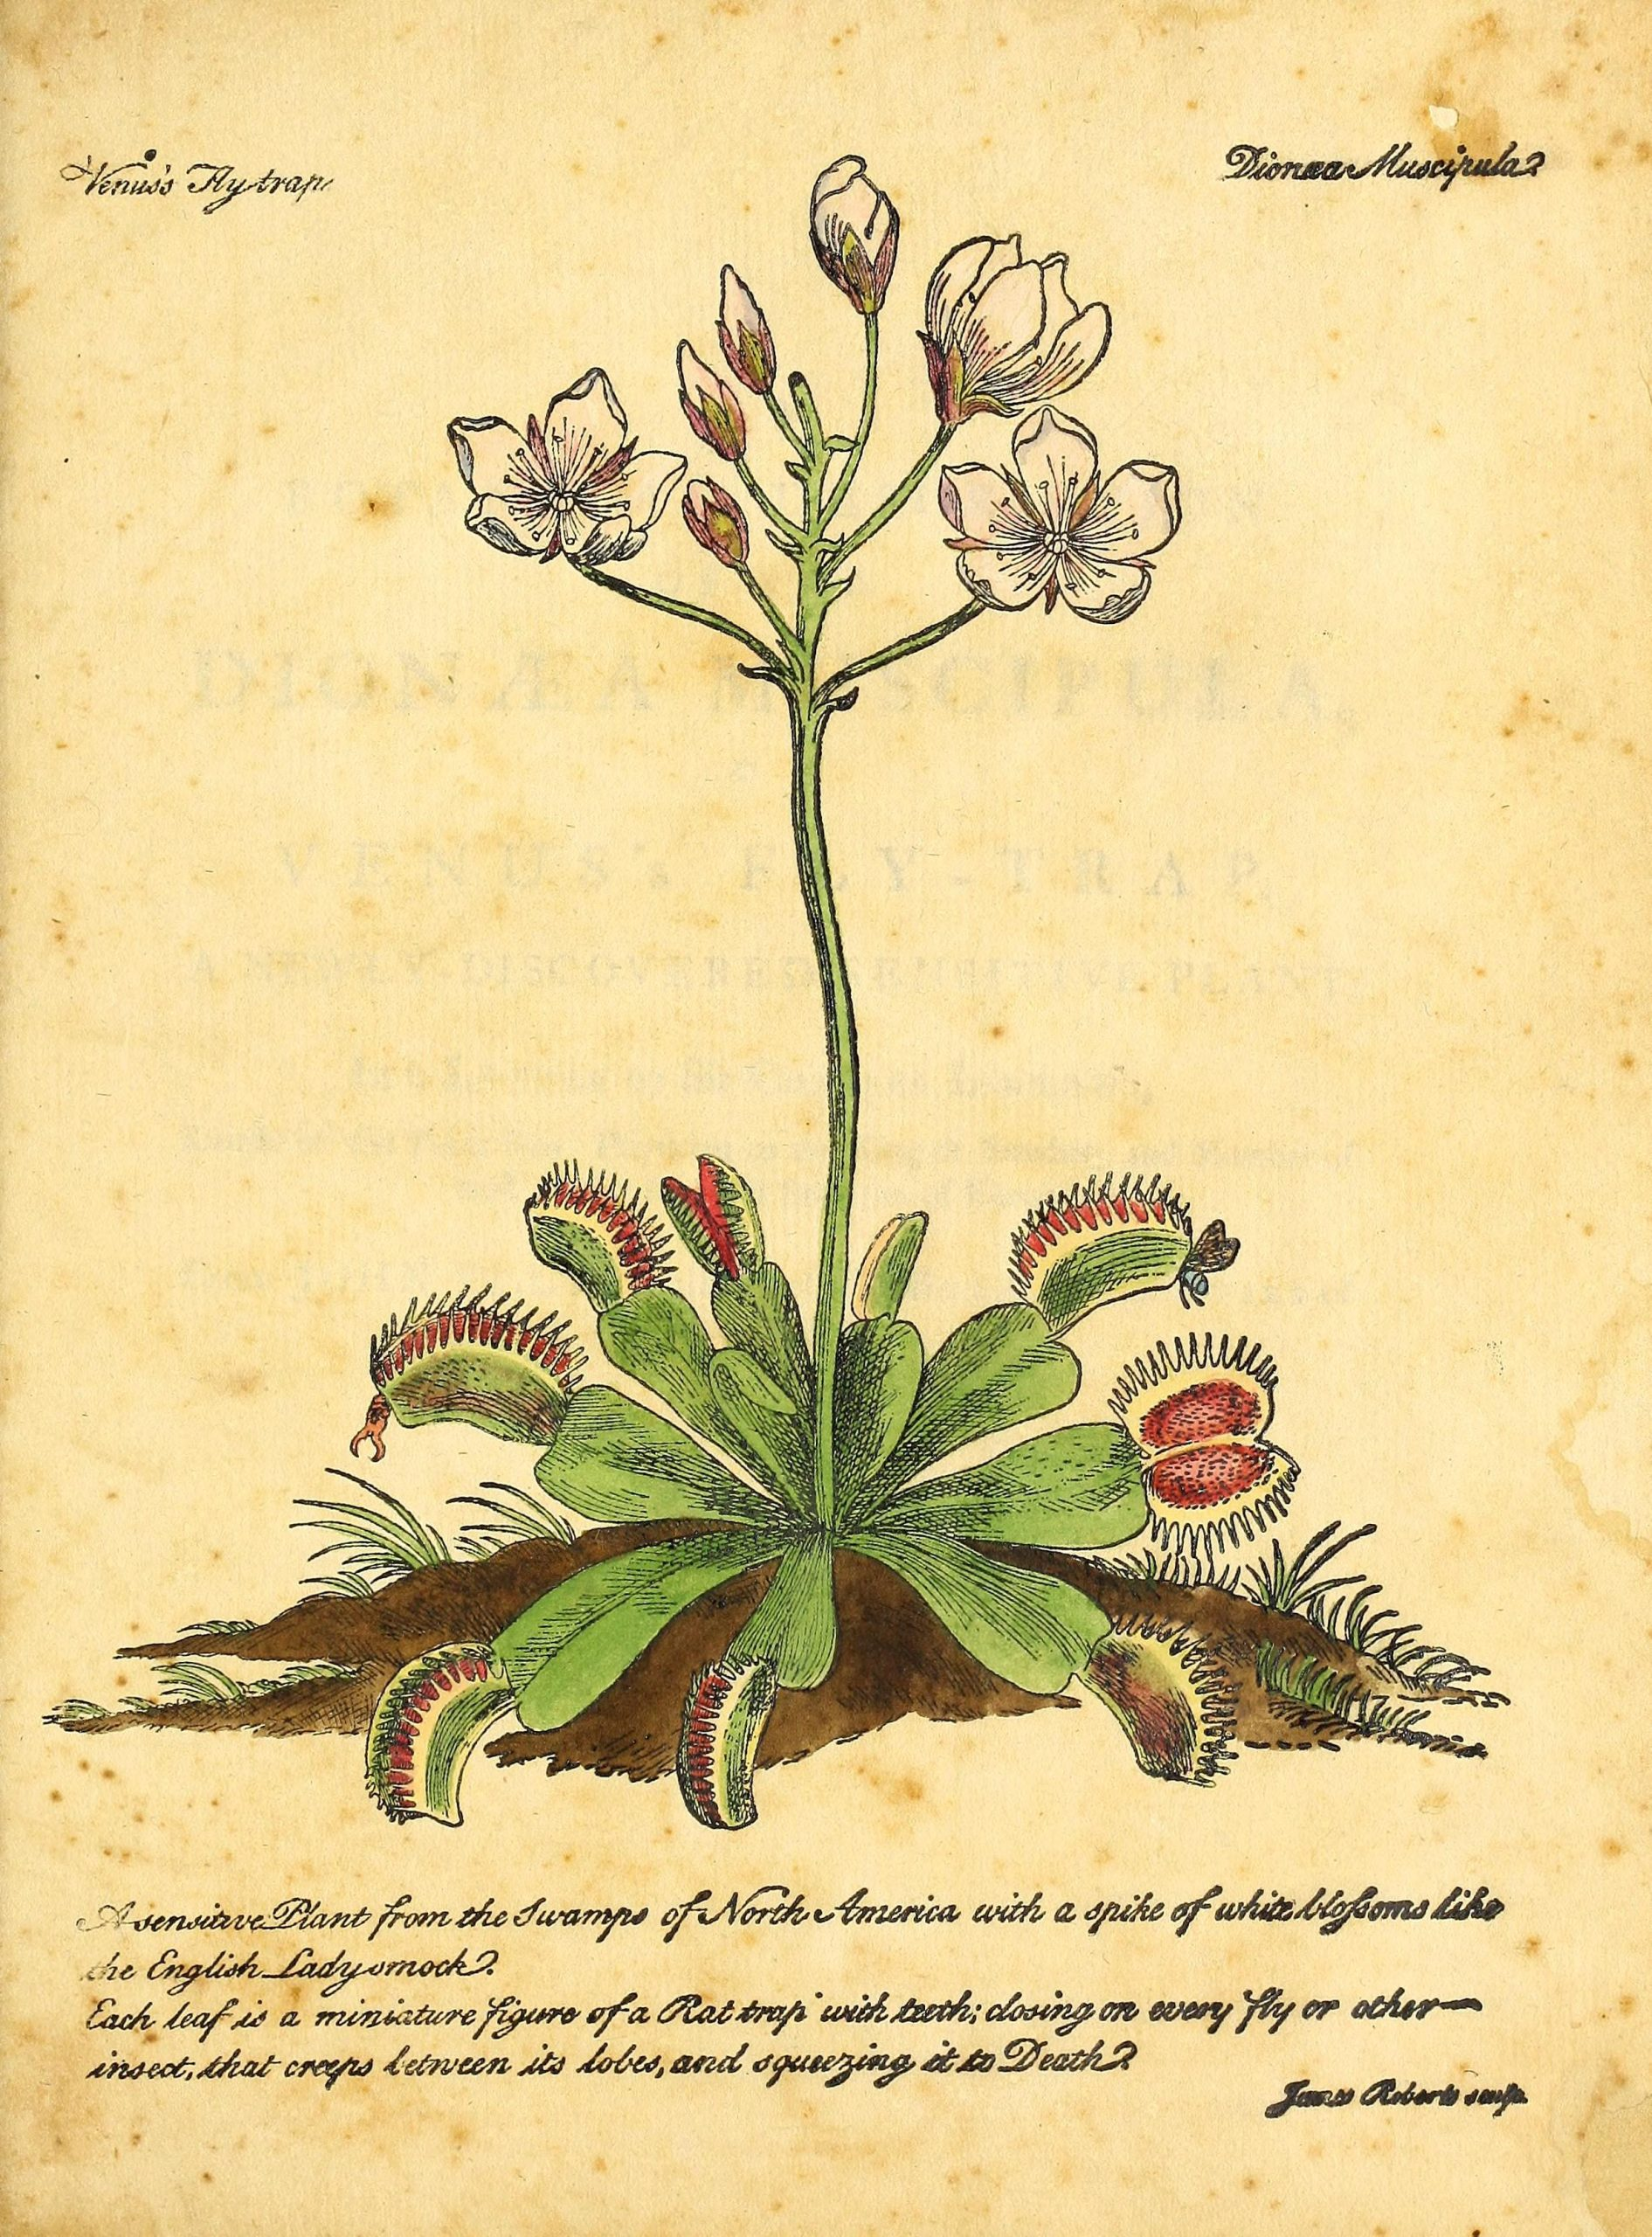 Full color sketch of a blooming Venus flytrap, with white blossoms and red-lined traps catching insects